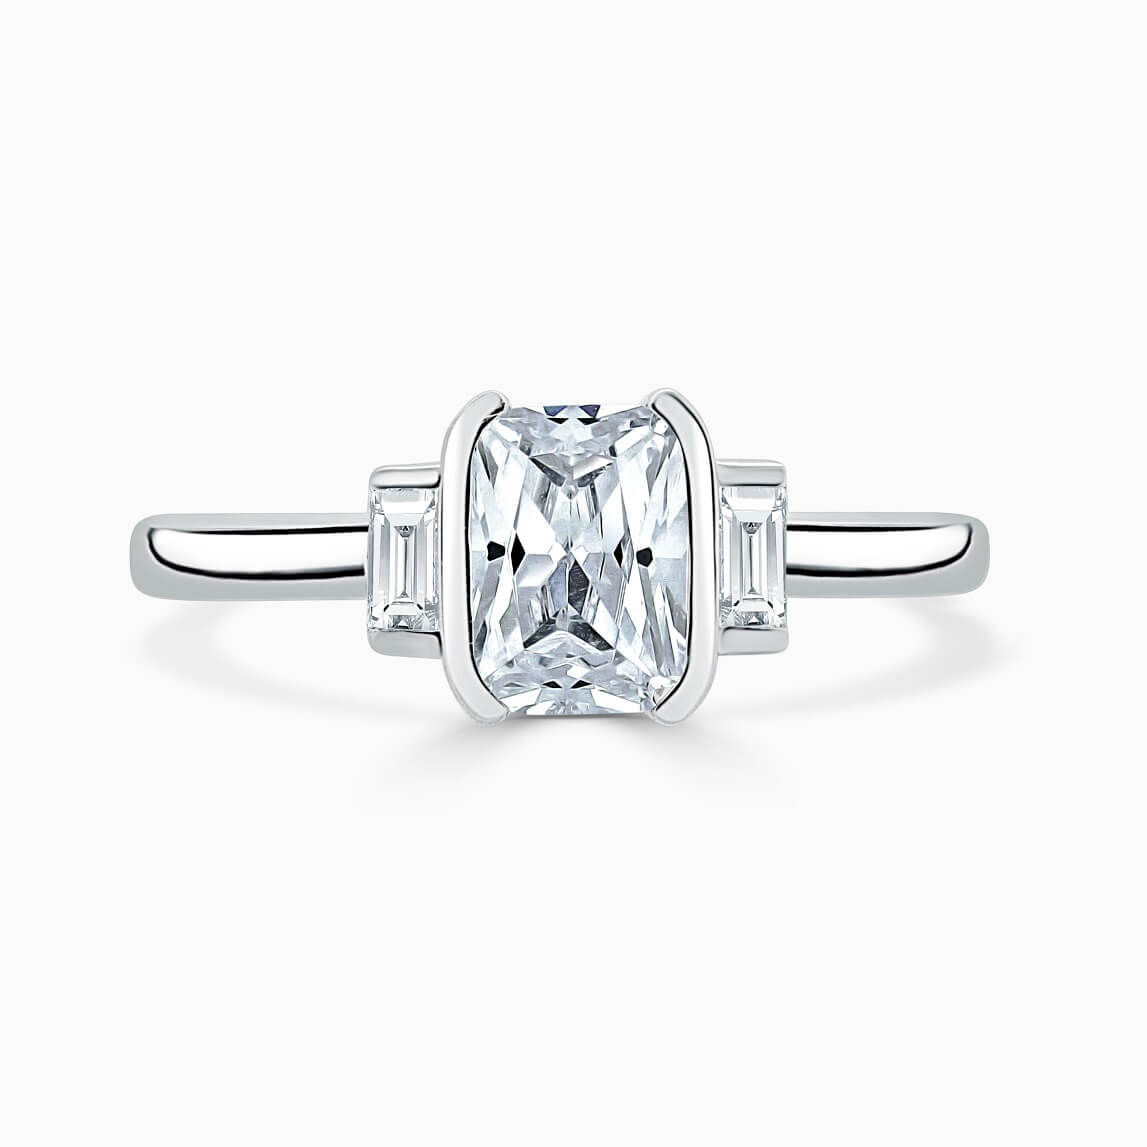 18ct White Gold Radiant Cut Art Deco 3 Stone With Baguettes Engagement Ring